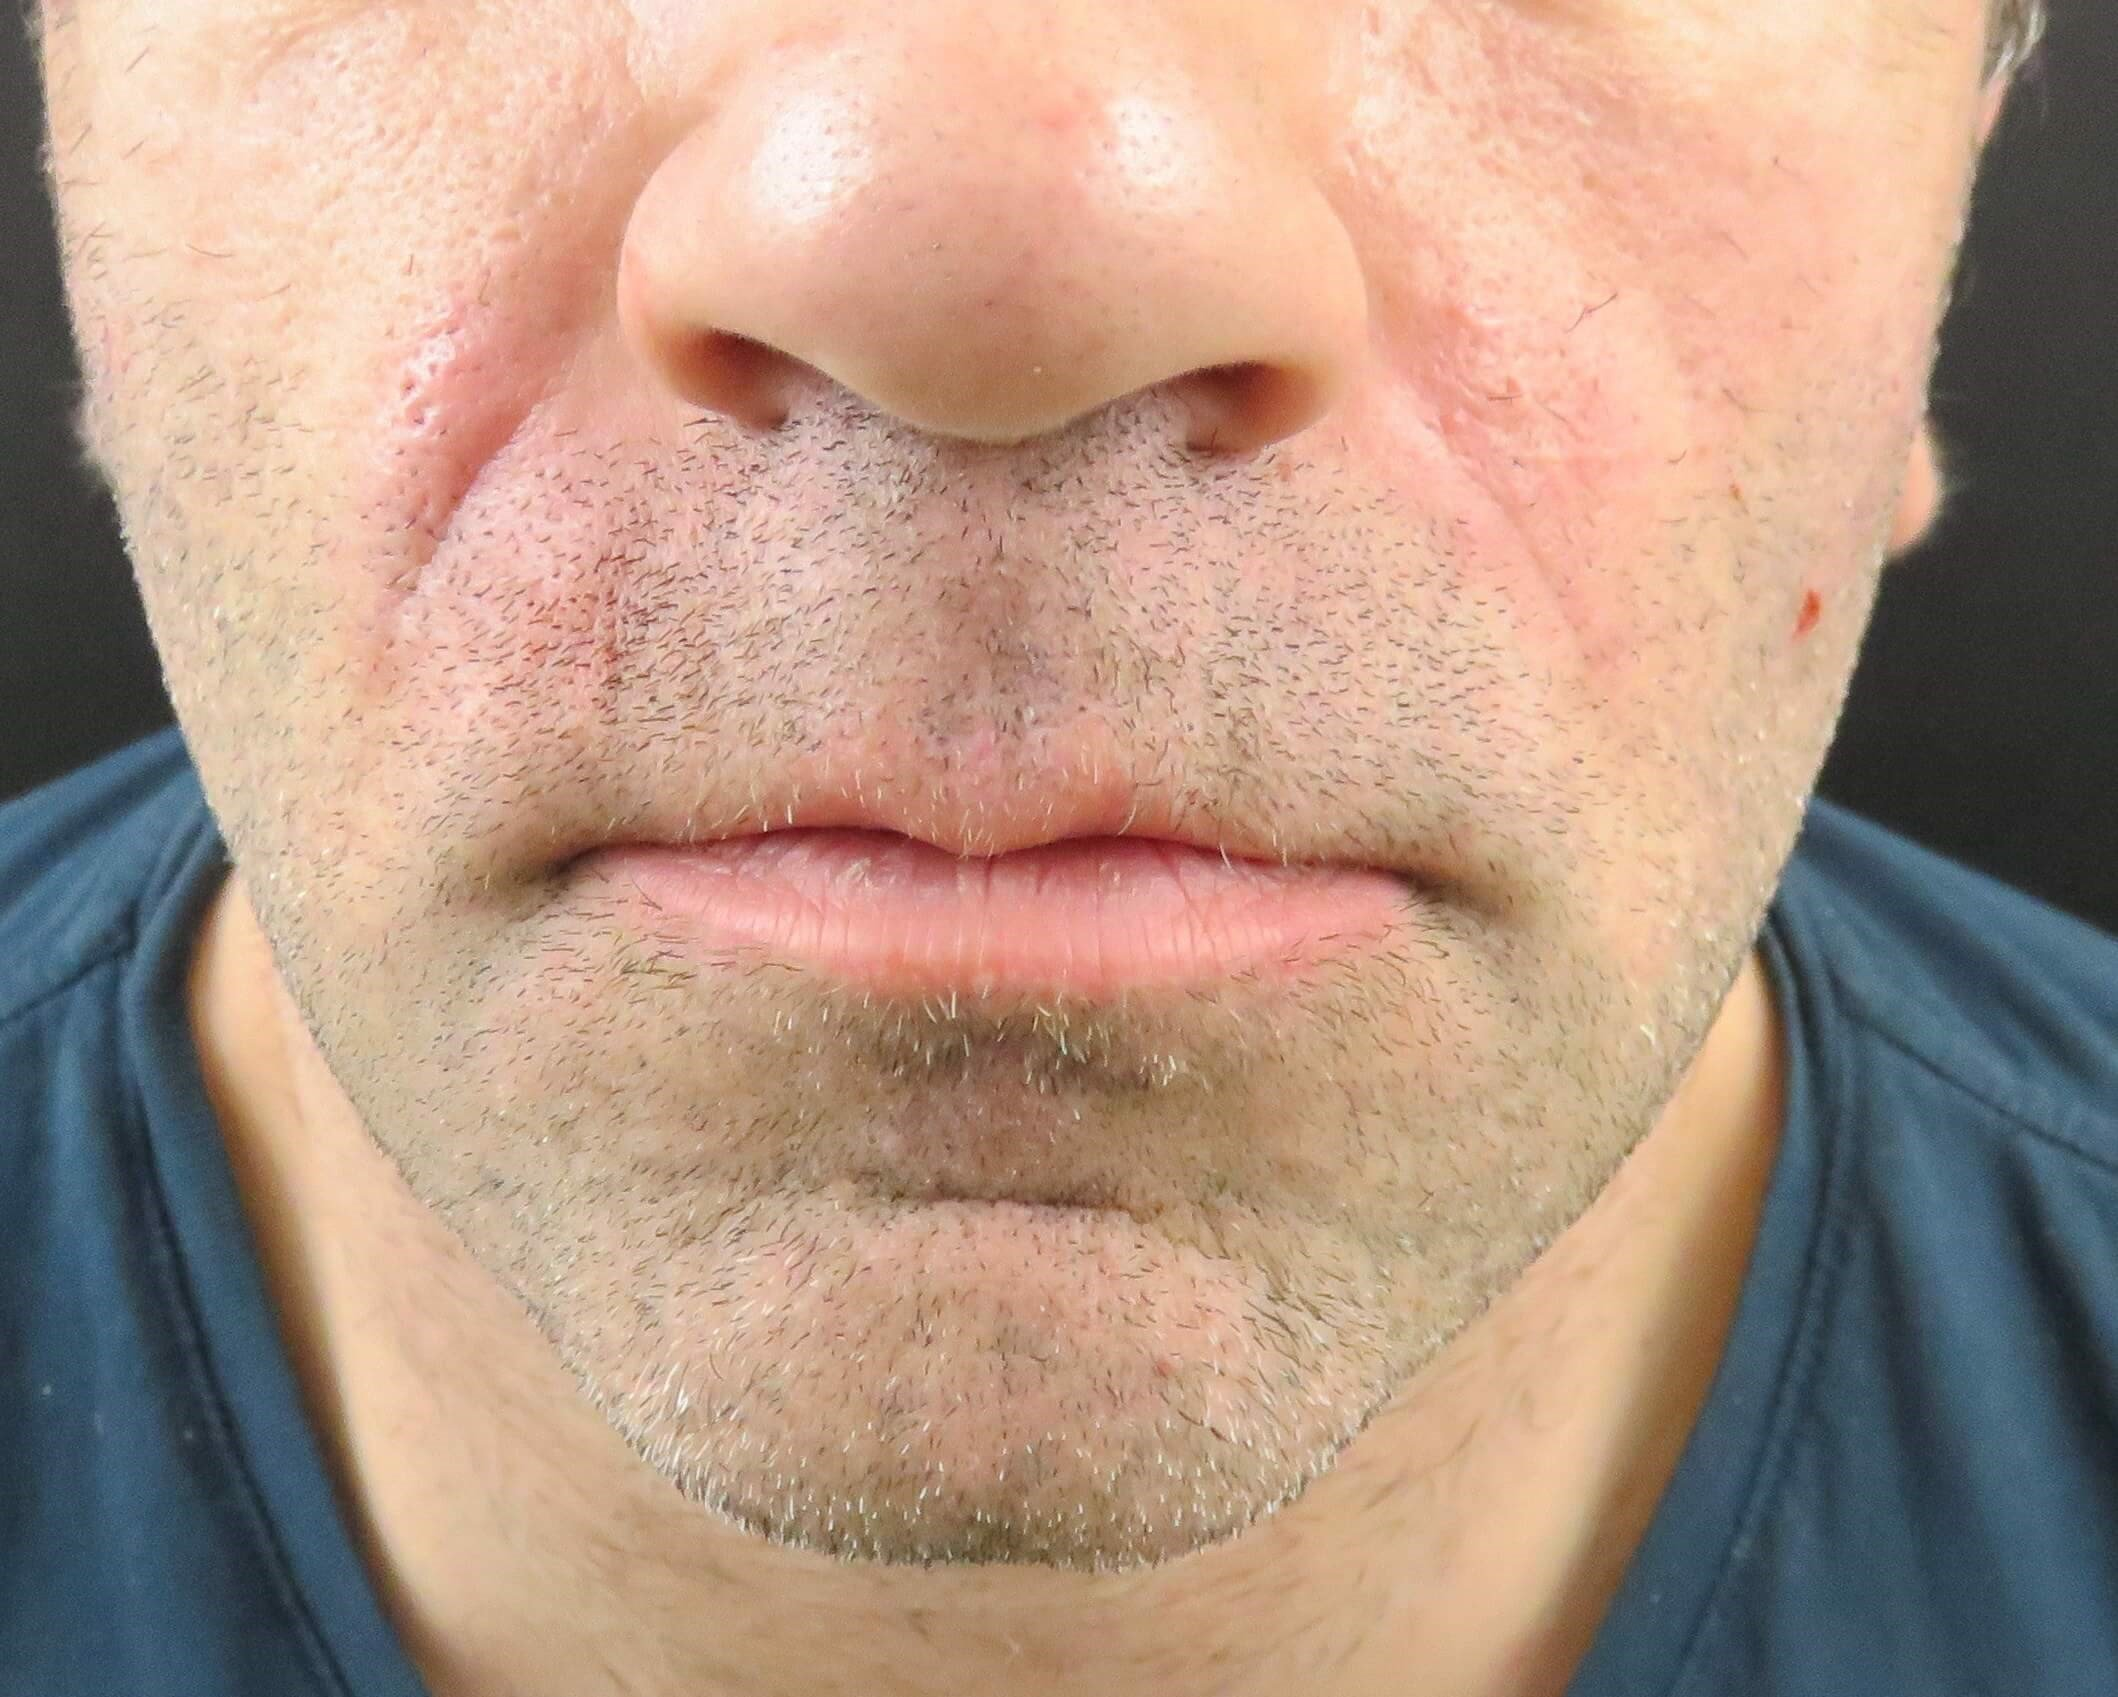 Juvederm - Nasolabial Folds Immediately After Injections